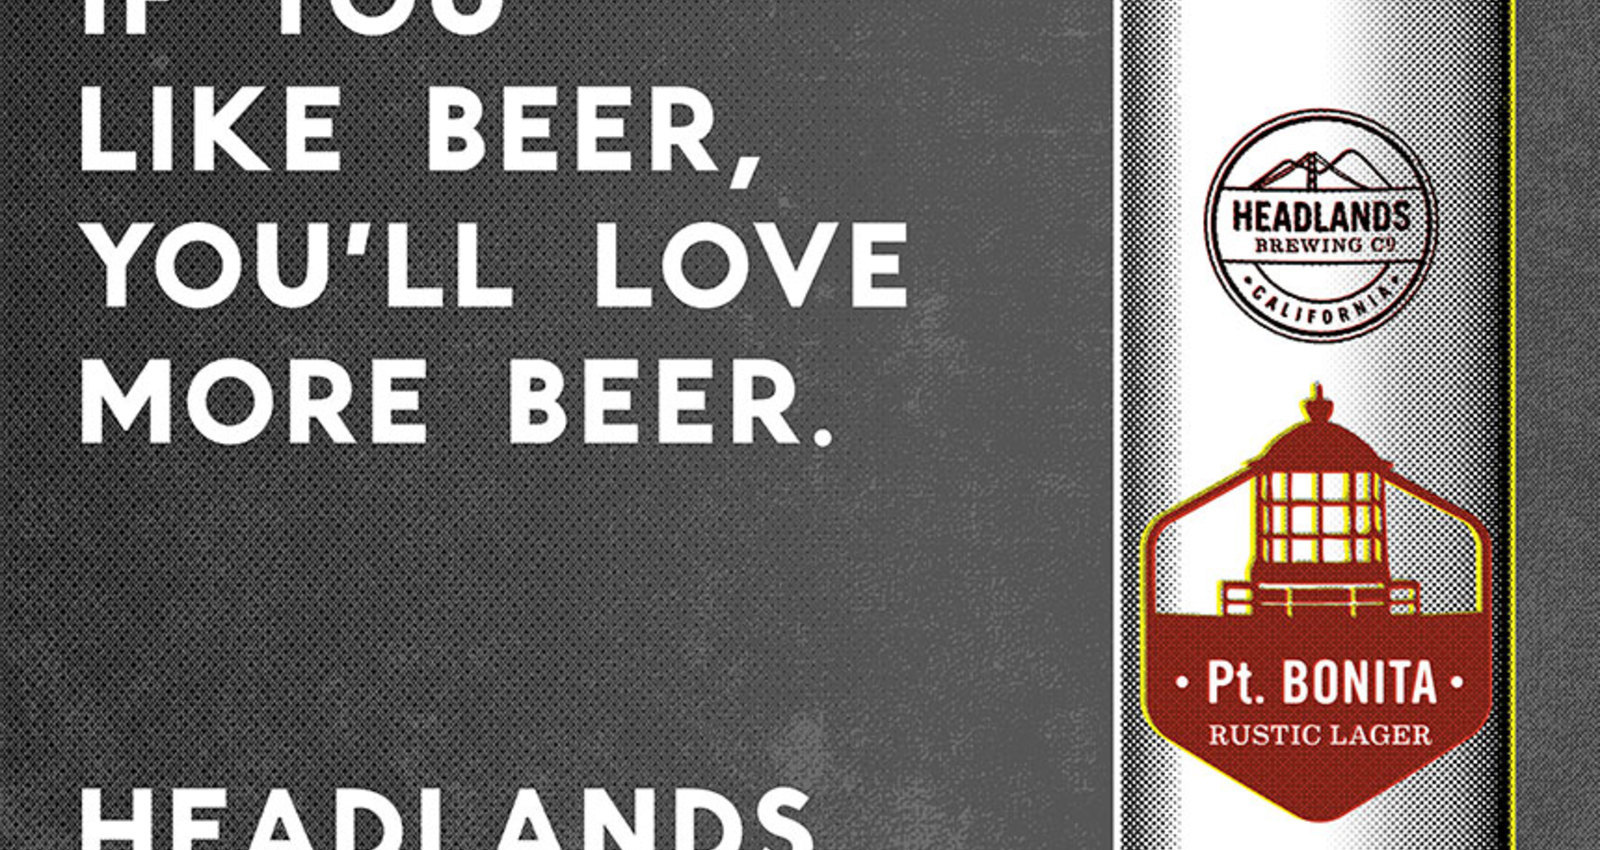 Headlands Brewing Company